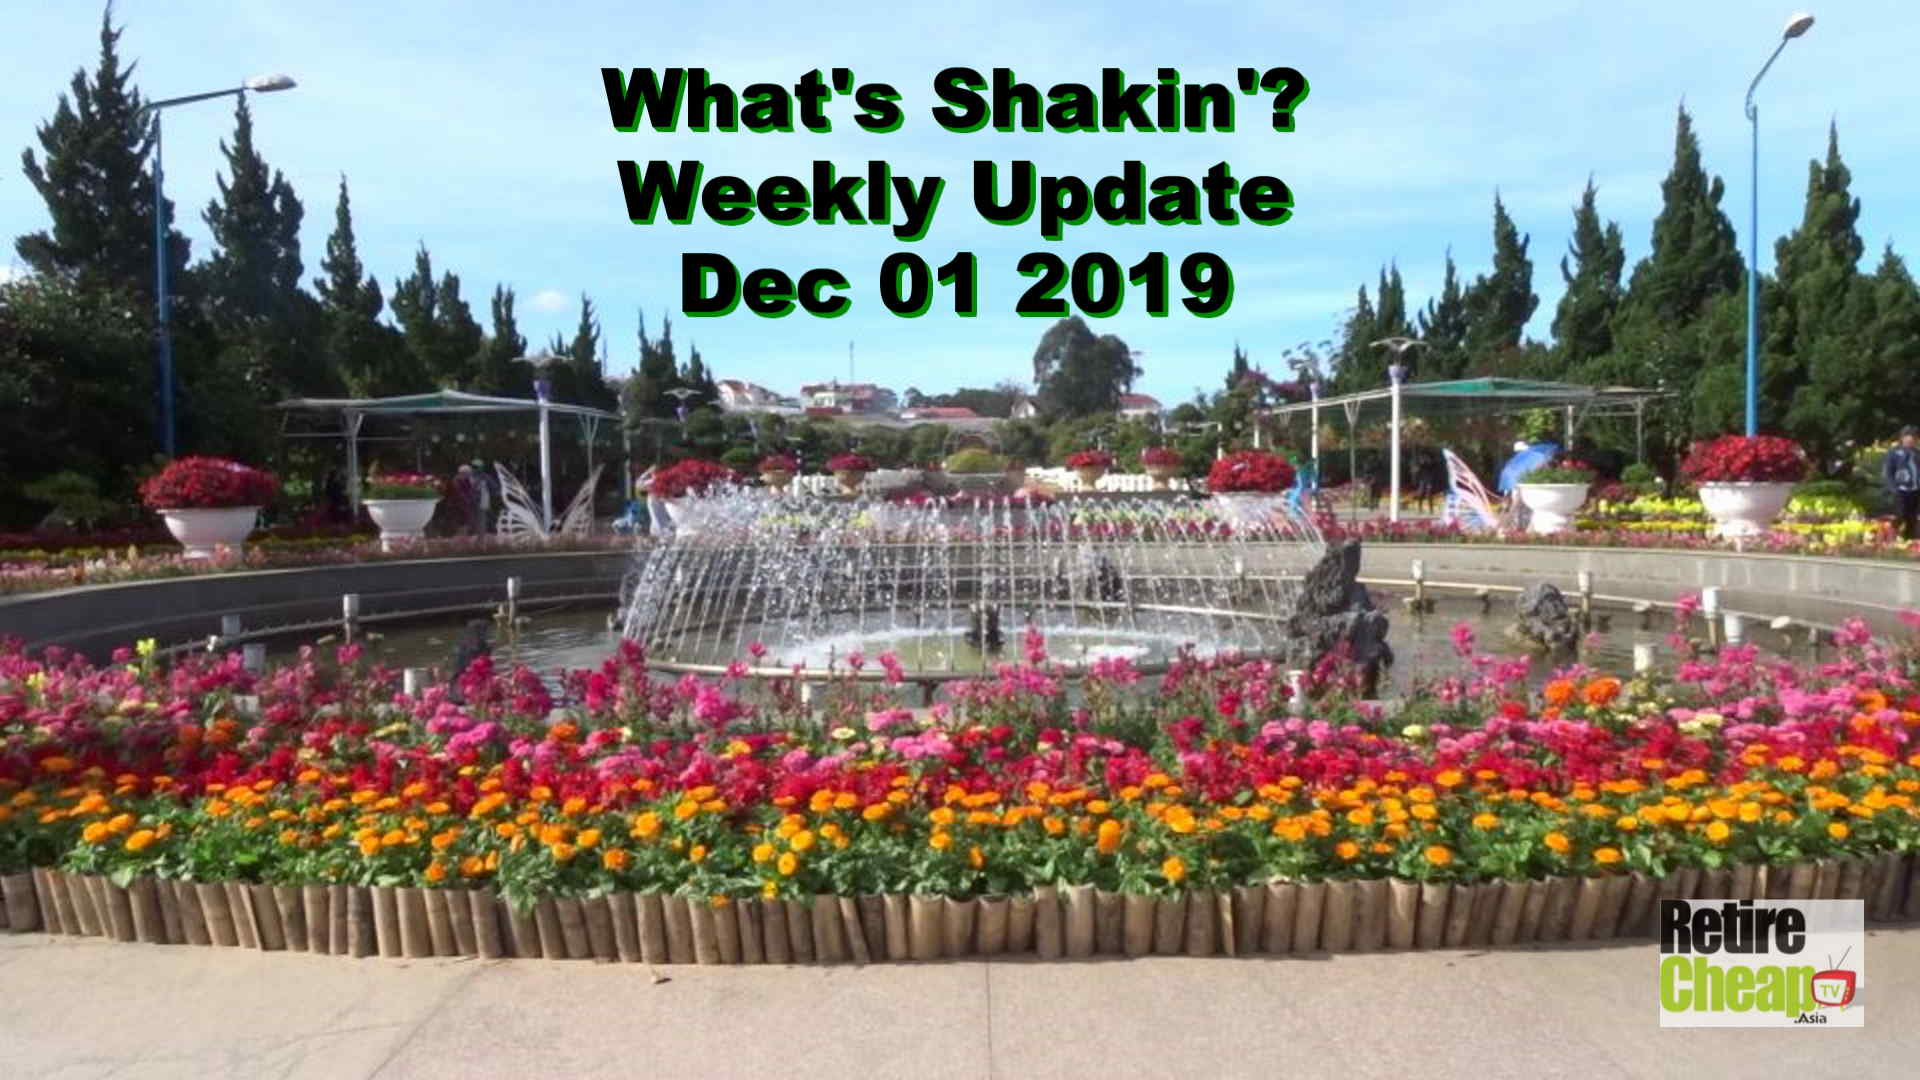 What's Shakn'? Week December 01 2019